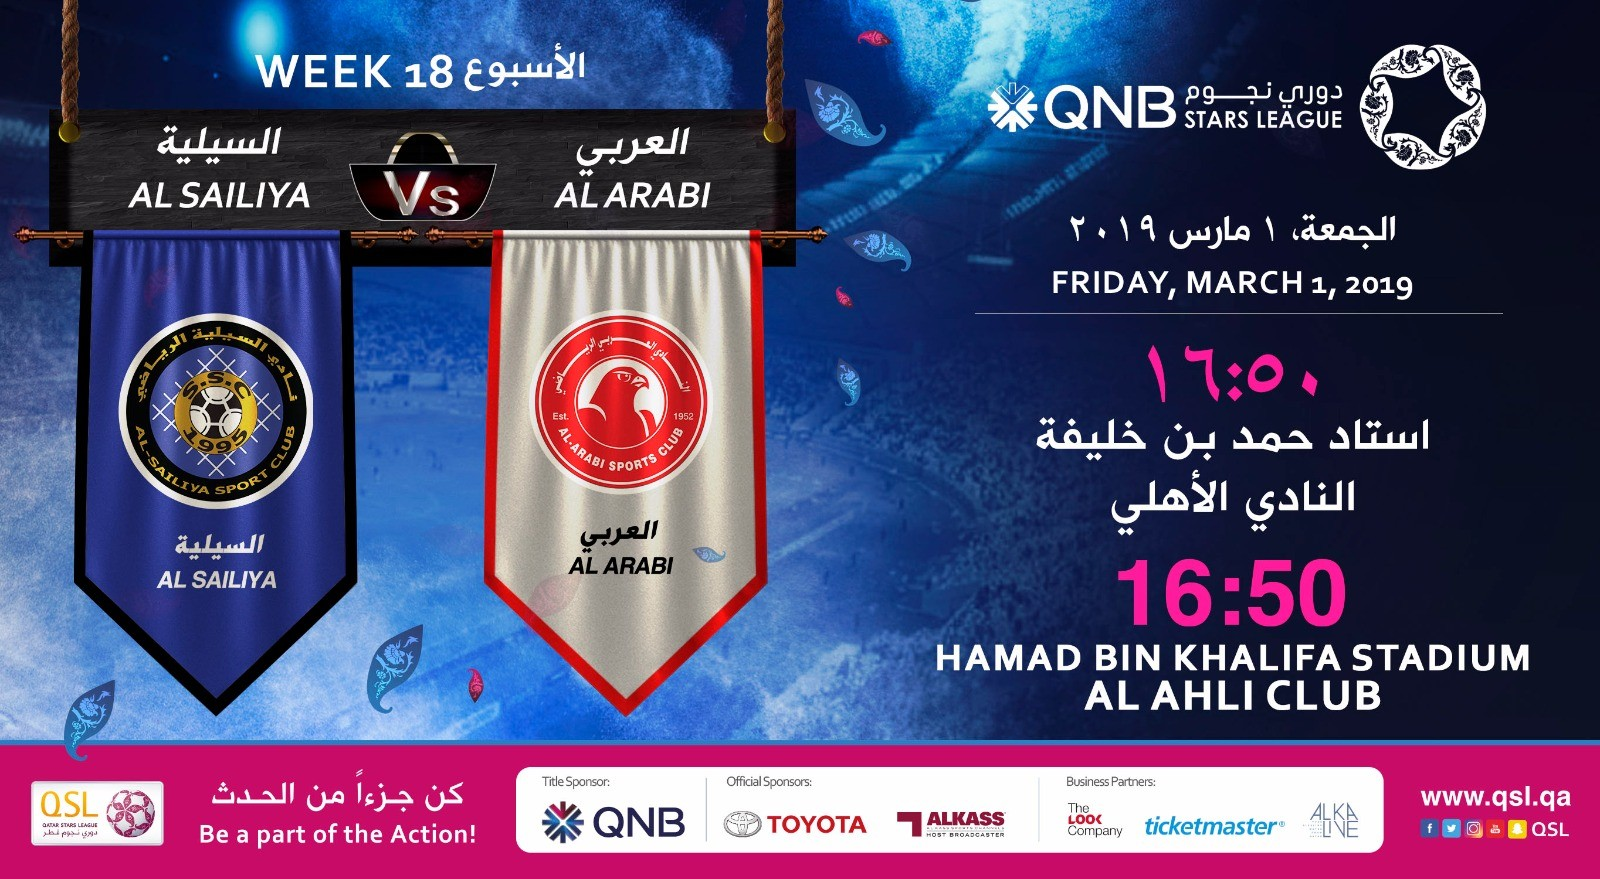 QNB Stars League Week 18 — Al Sailiya vs Al Arabi